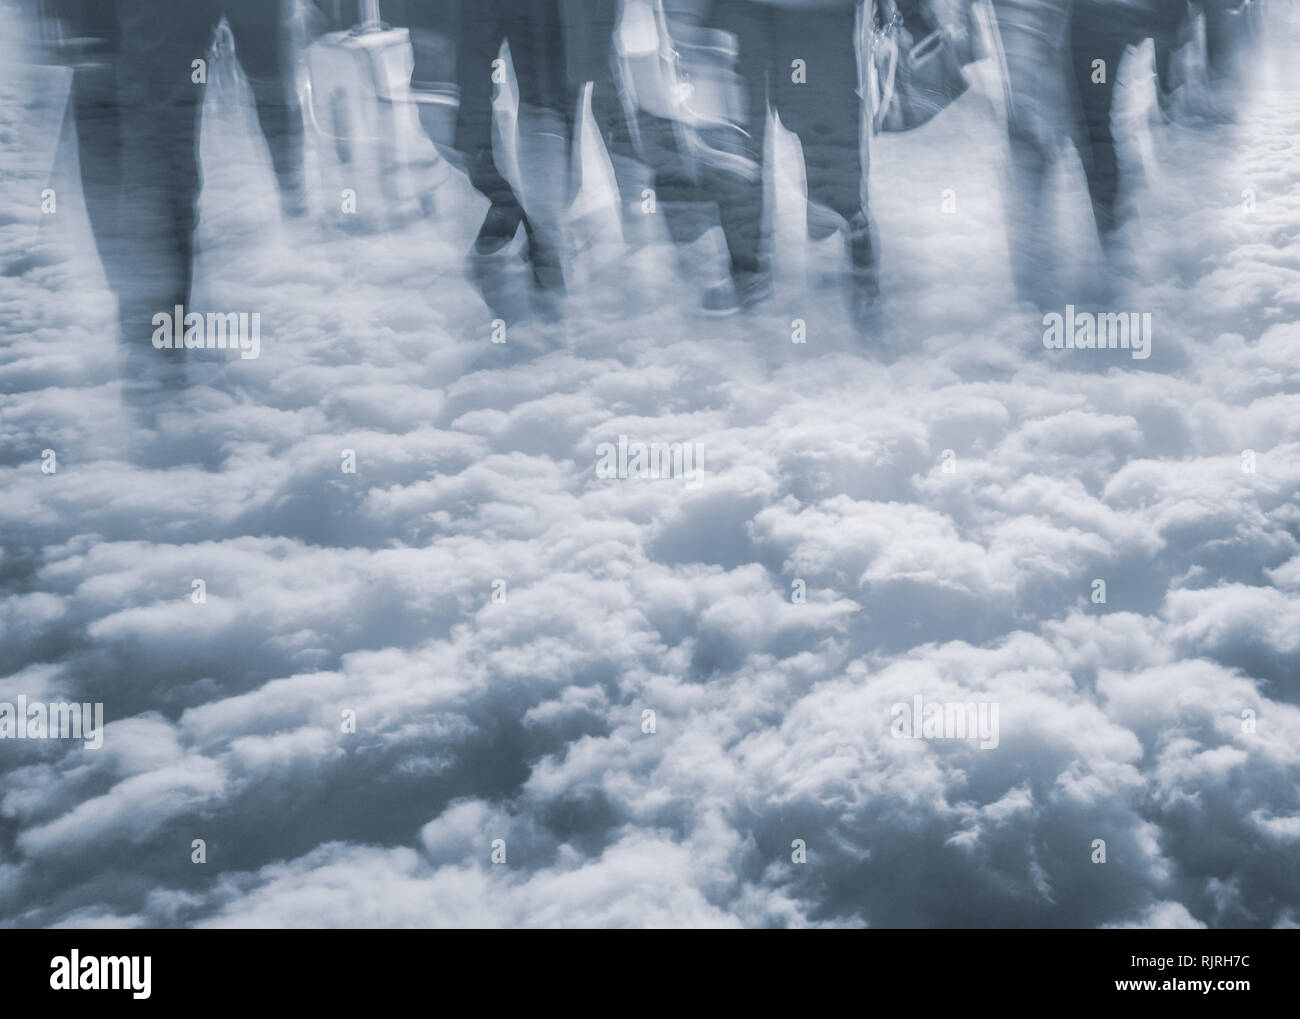 double exposure of people walking in the clouds - travelling or rushing to get somewhere - Stock Image